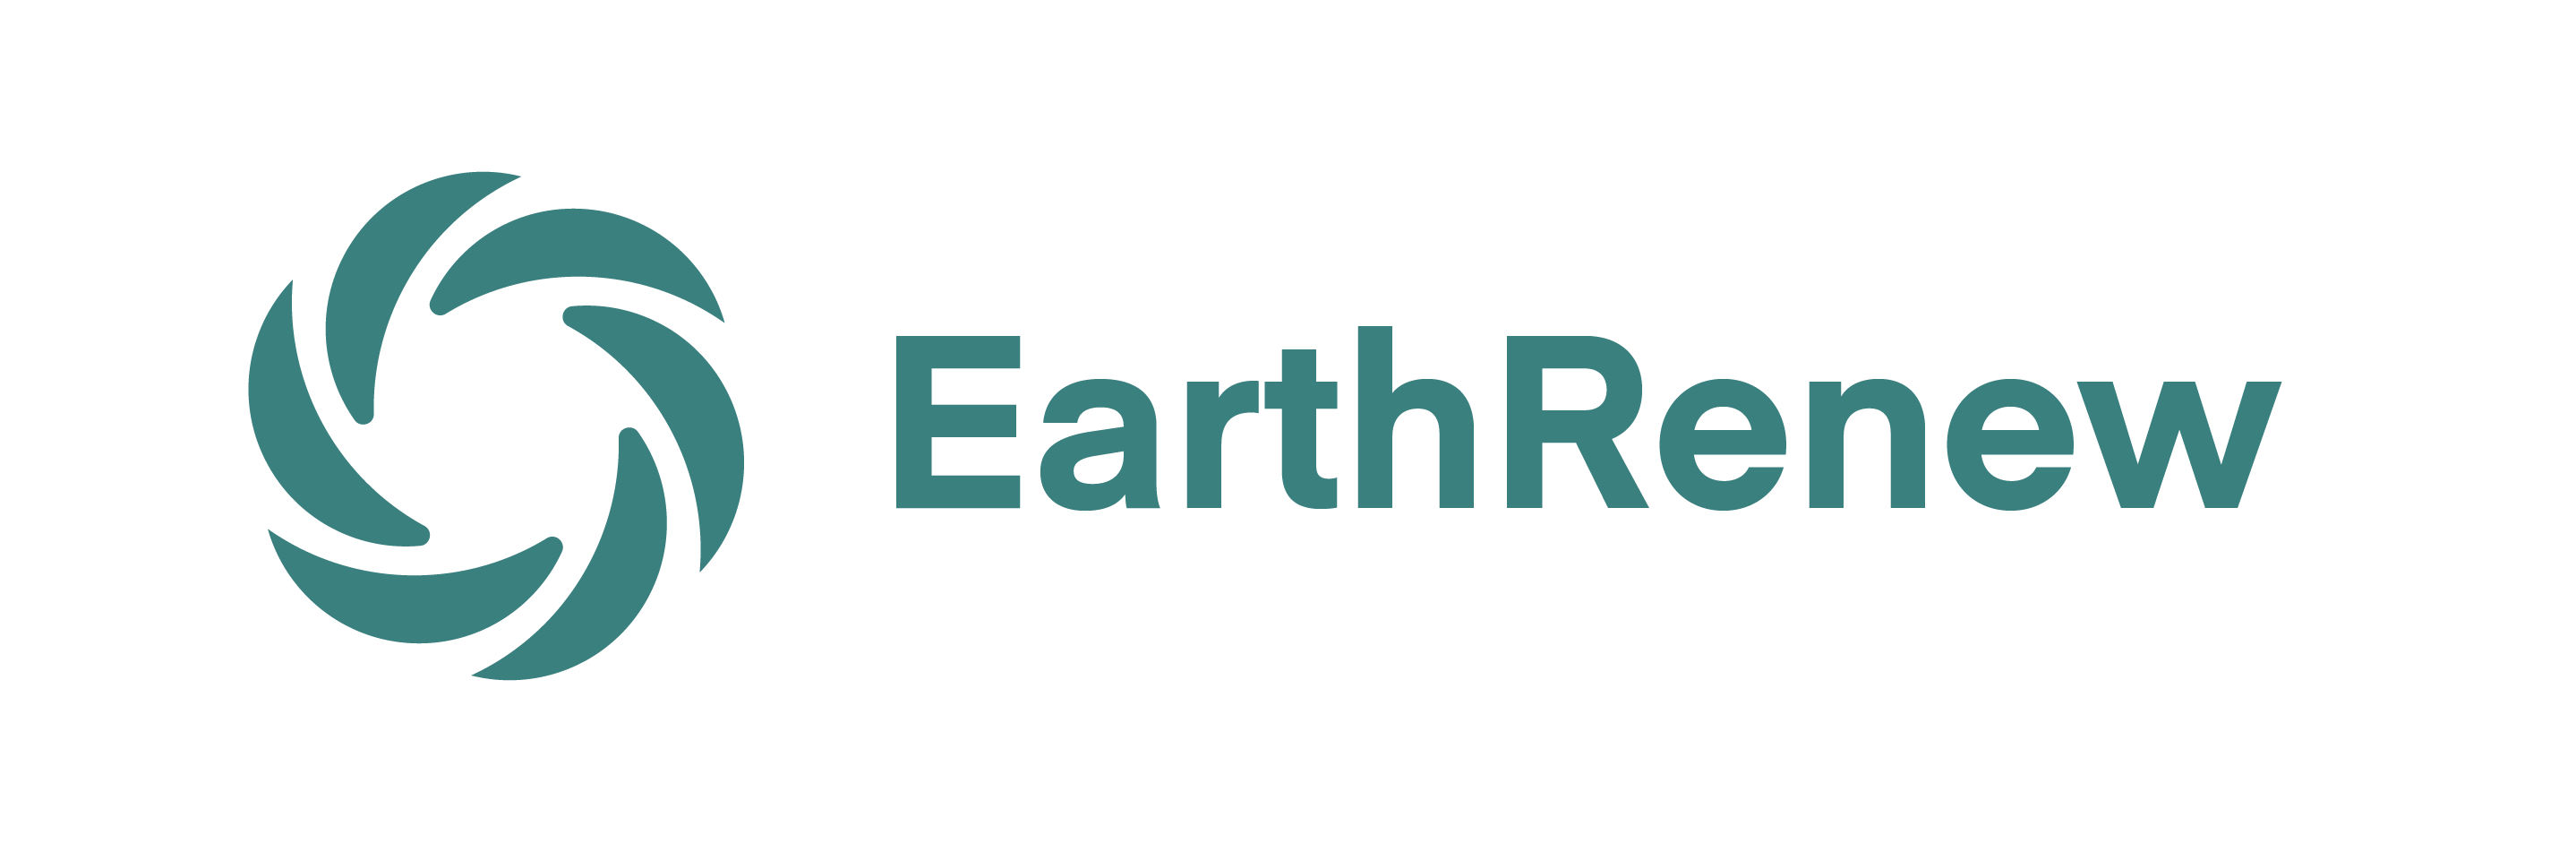 EarthRenew Announces Feasibility Study With One of the Largest Feedlots in the Southwestern United States